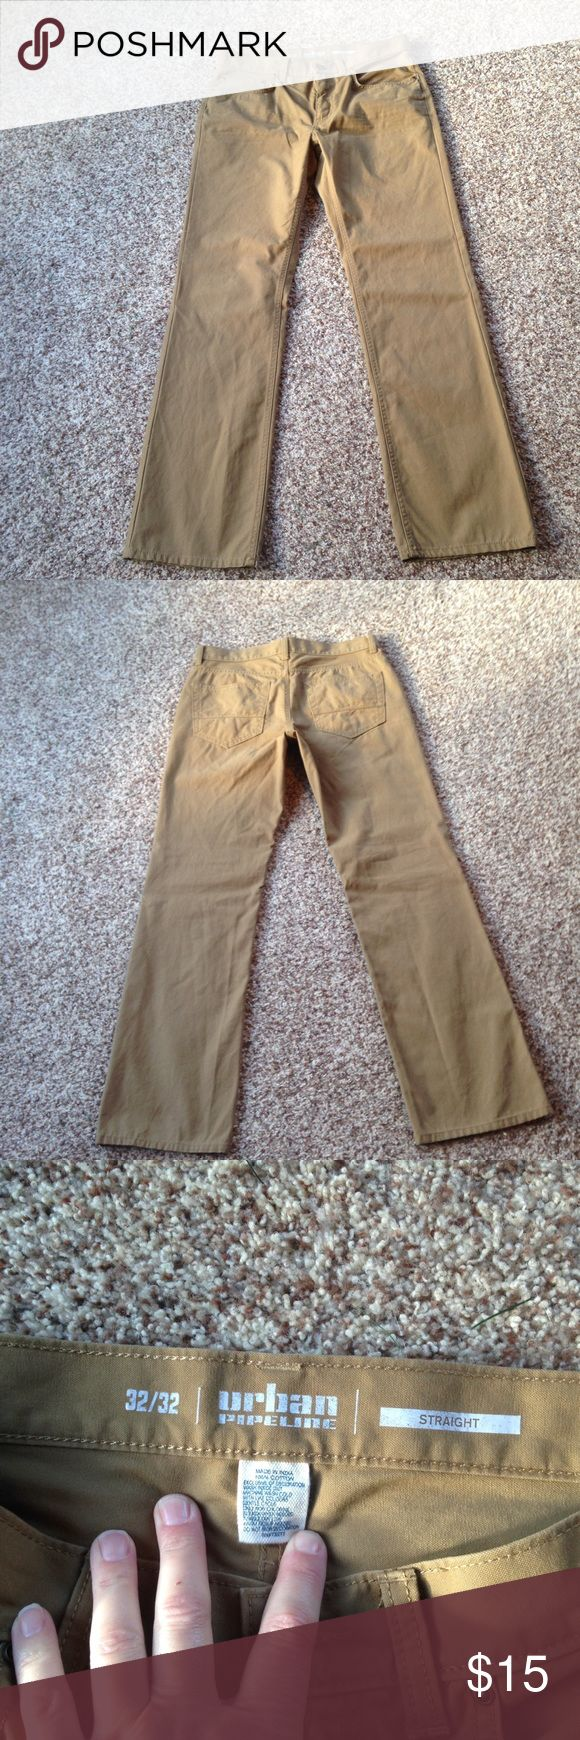 Men's casual pants Men's casual pants. Worn only once. Size 32/32. Straight fit. Camel color. Urban Pipeline Pants Chinos & Khakis